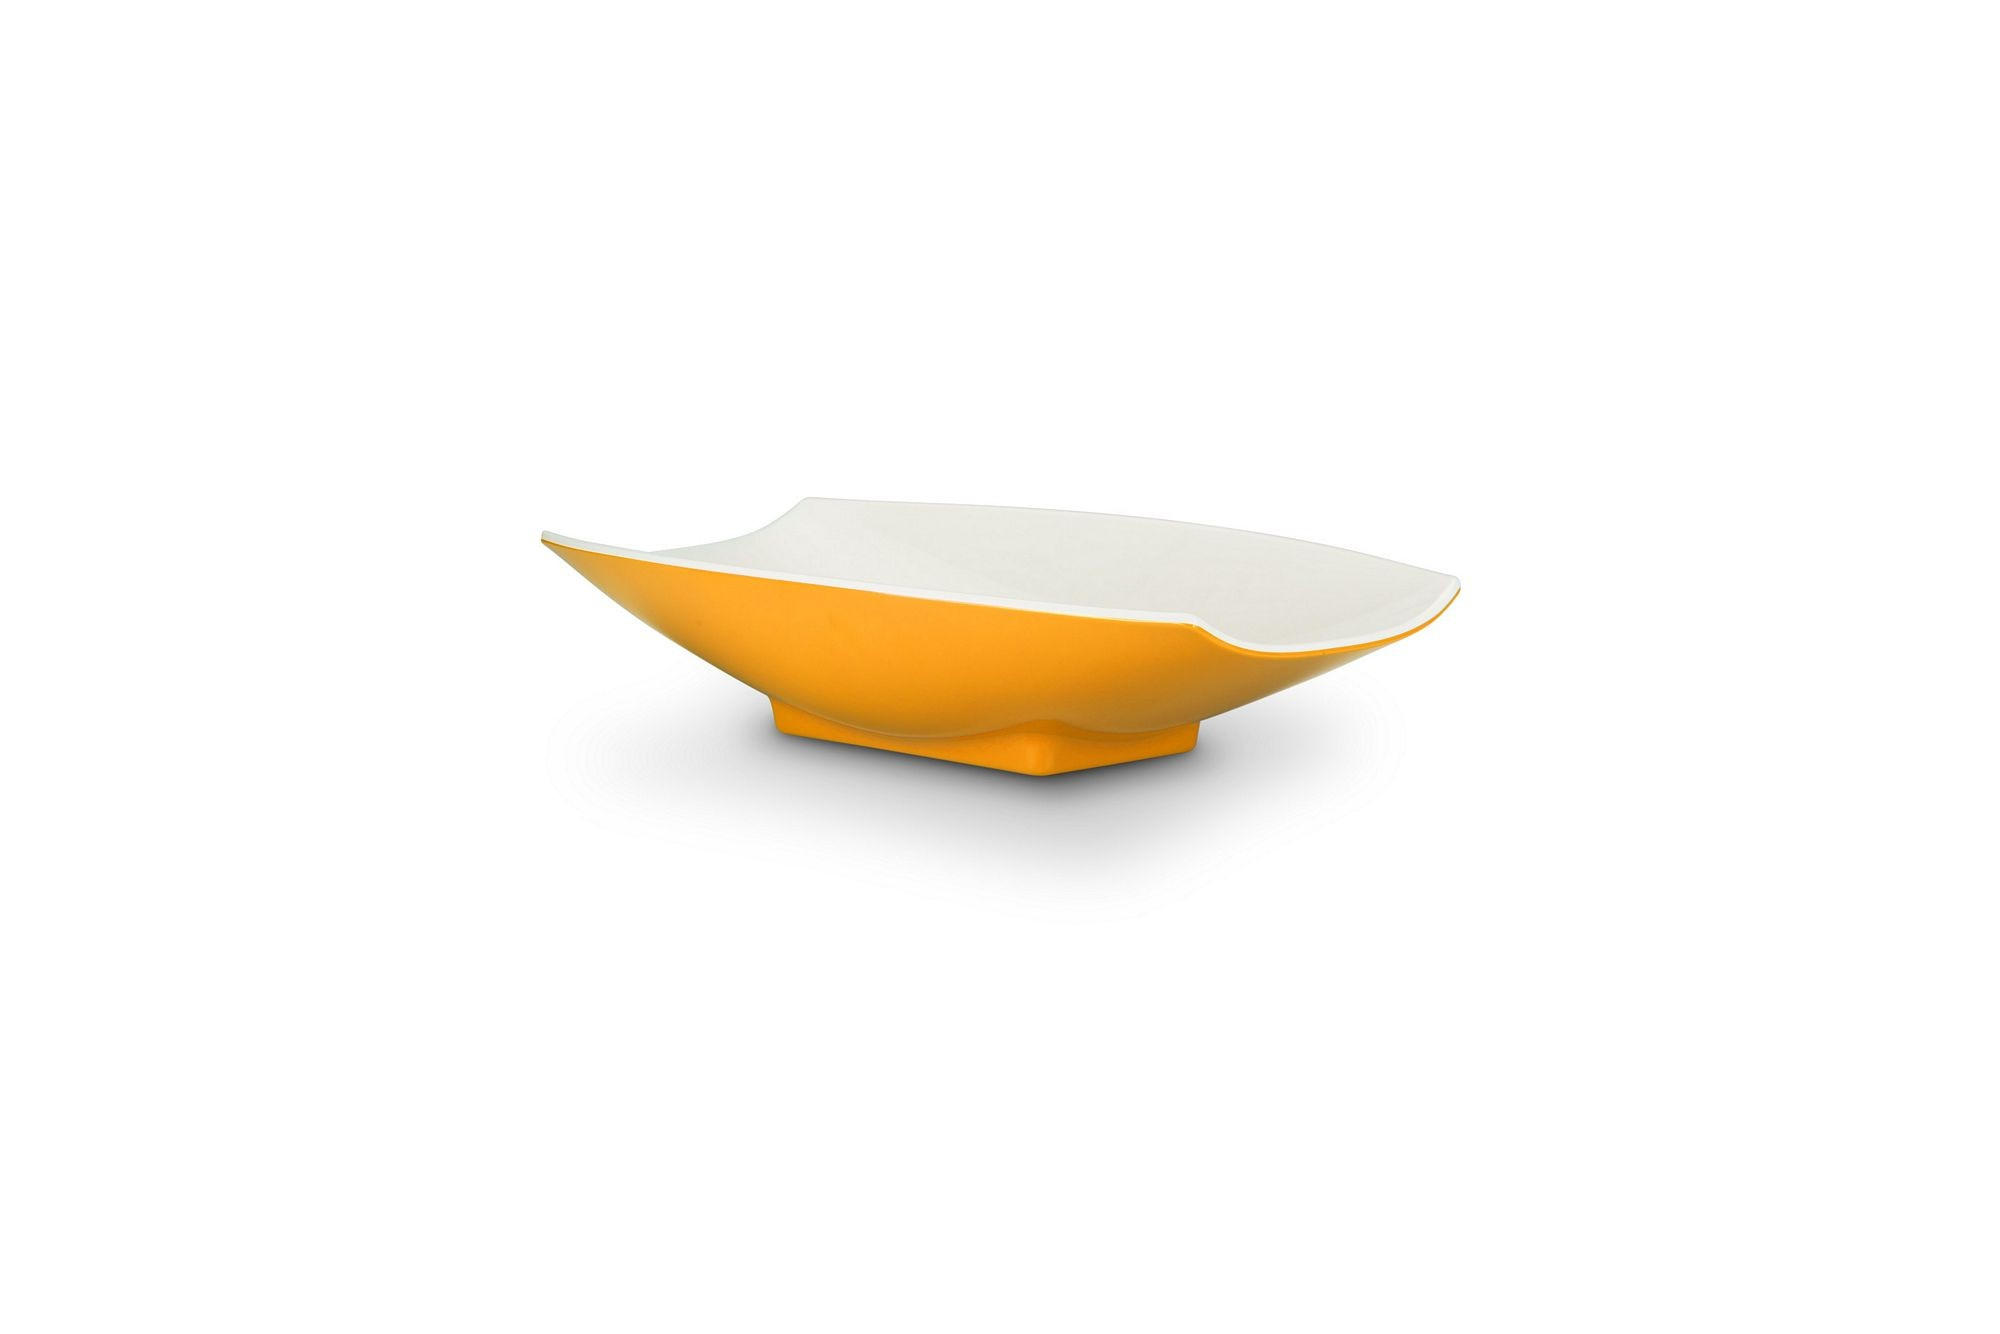 Bon Chef 53702-2ToneYellow Melamine Curves Bowl, Yellow Outside/White Inside 24 oz.